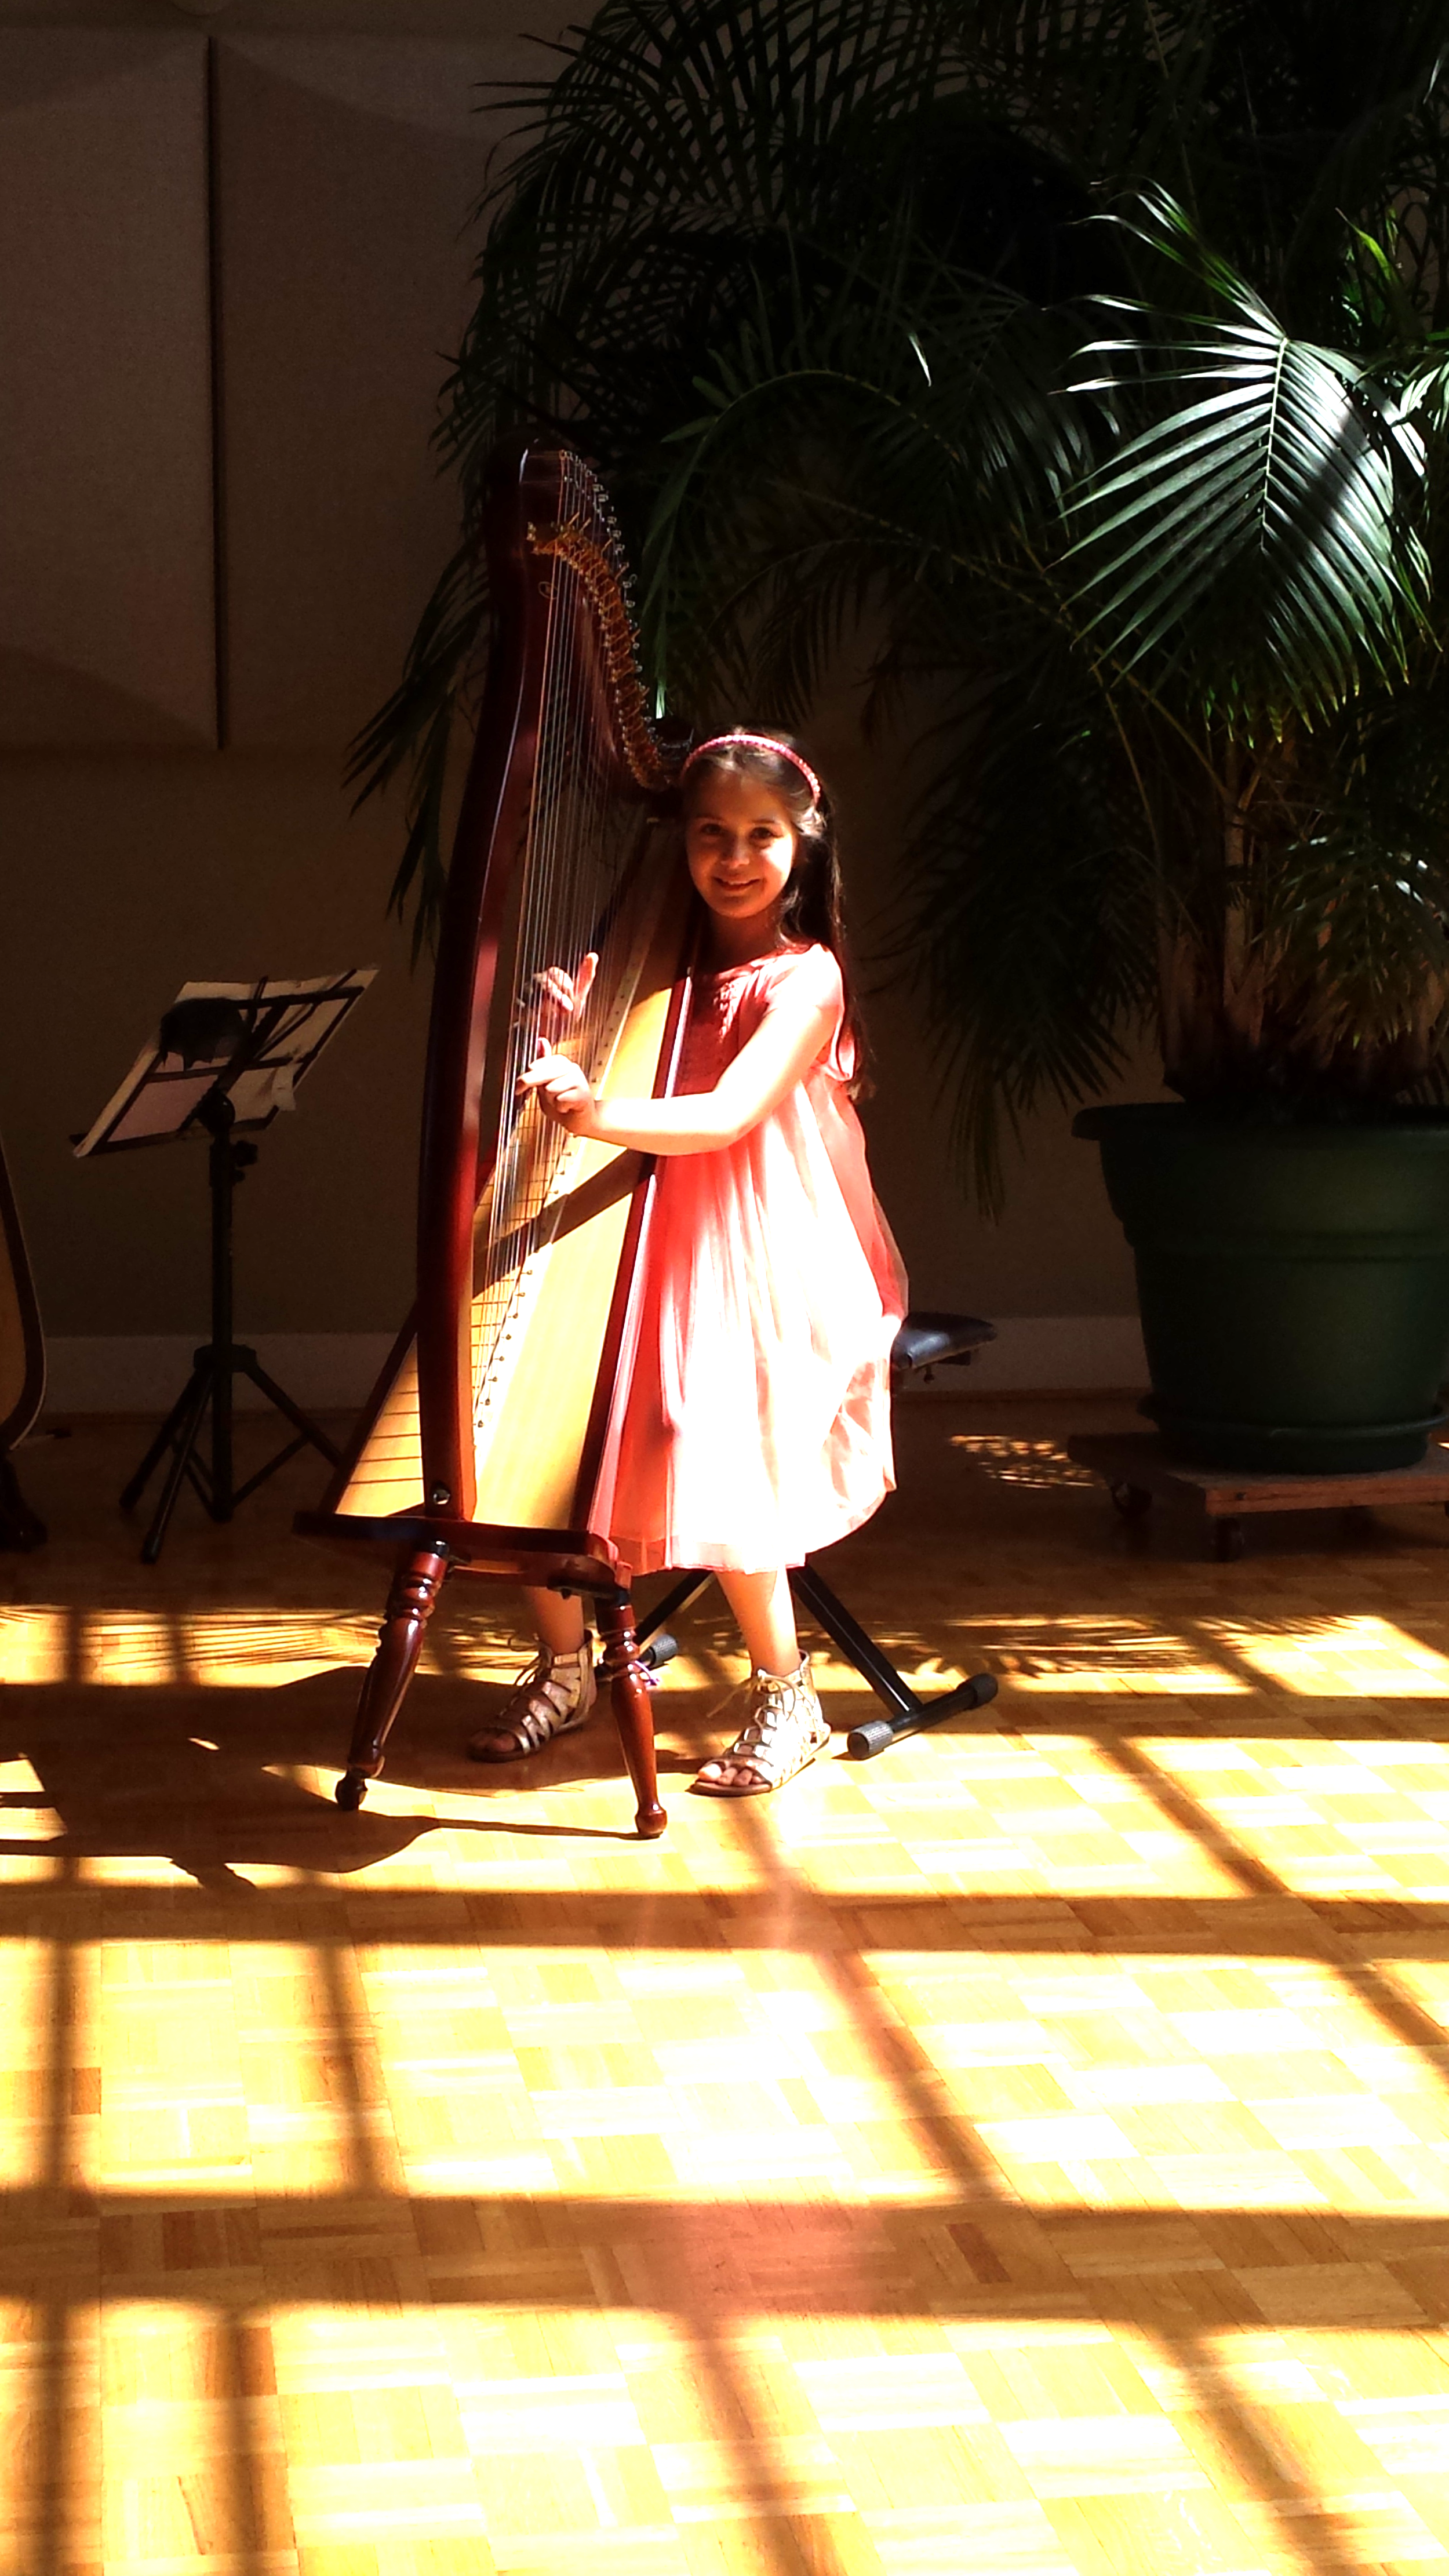 ONE OF MY HARP STUDENTS